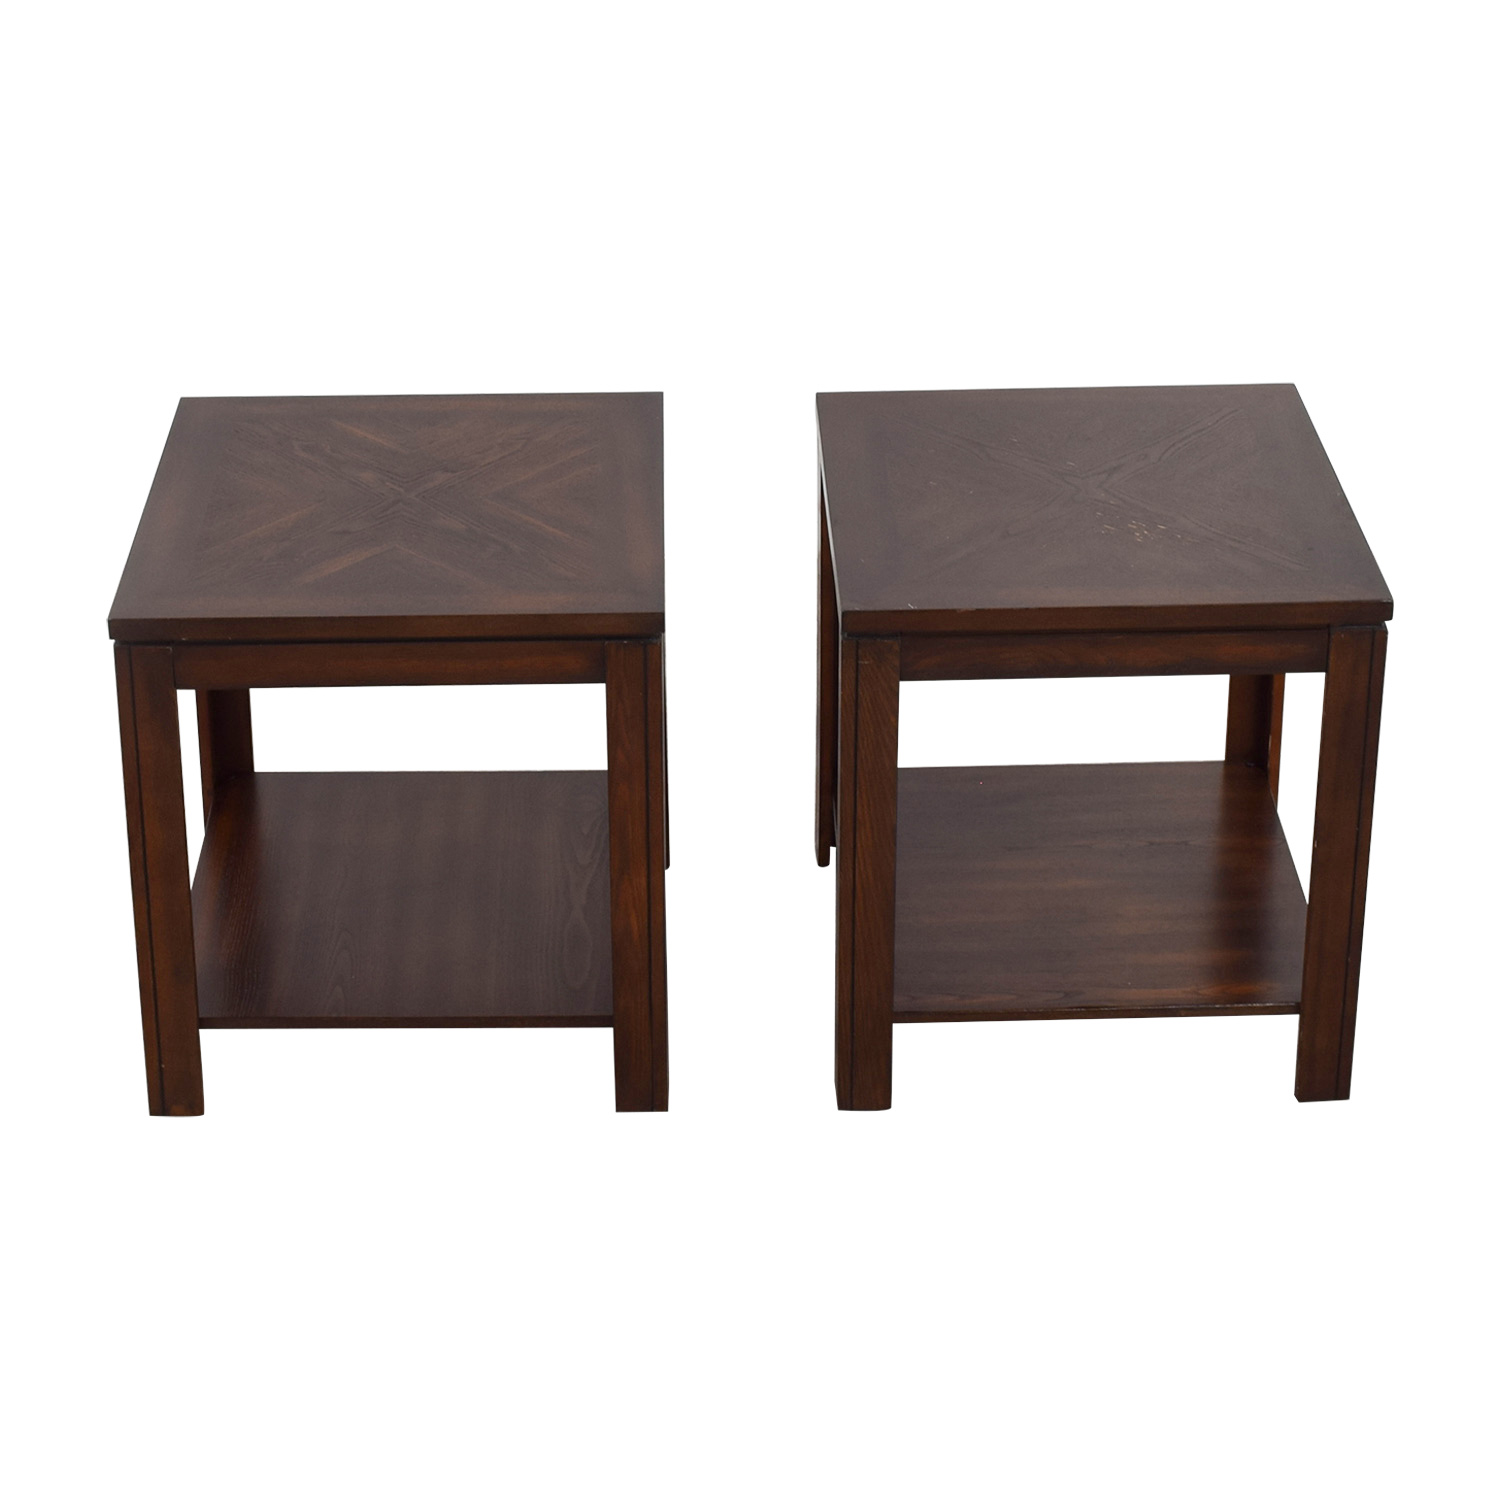 Bob's Furniture Lower Shelf End Tables / End Tables